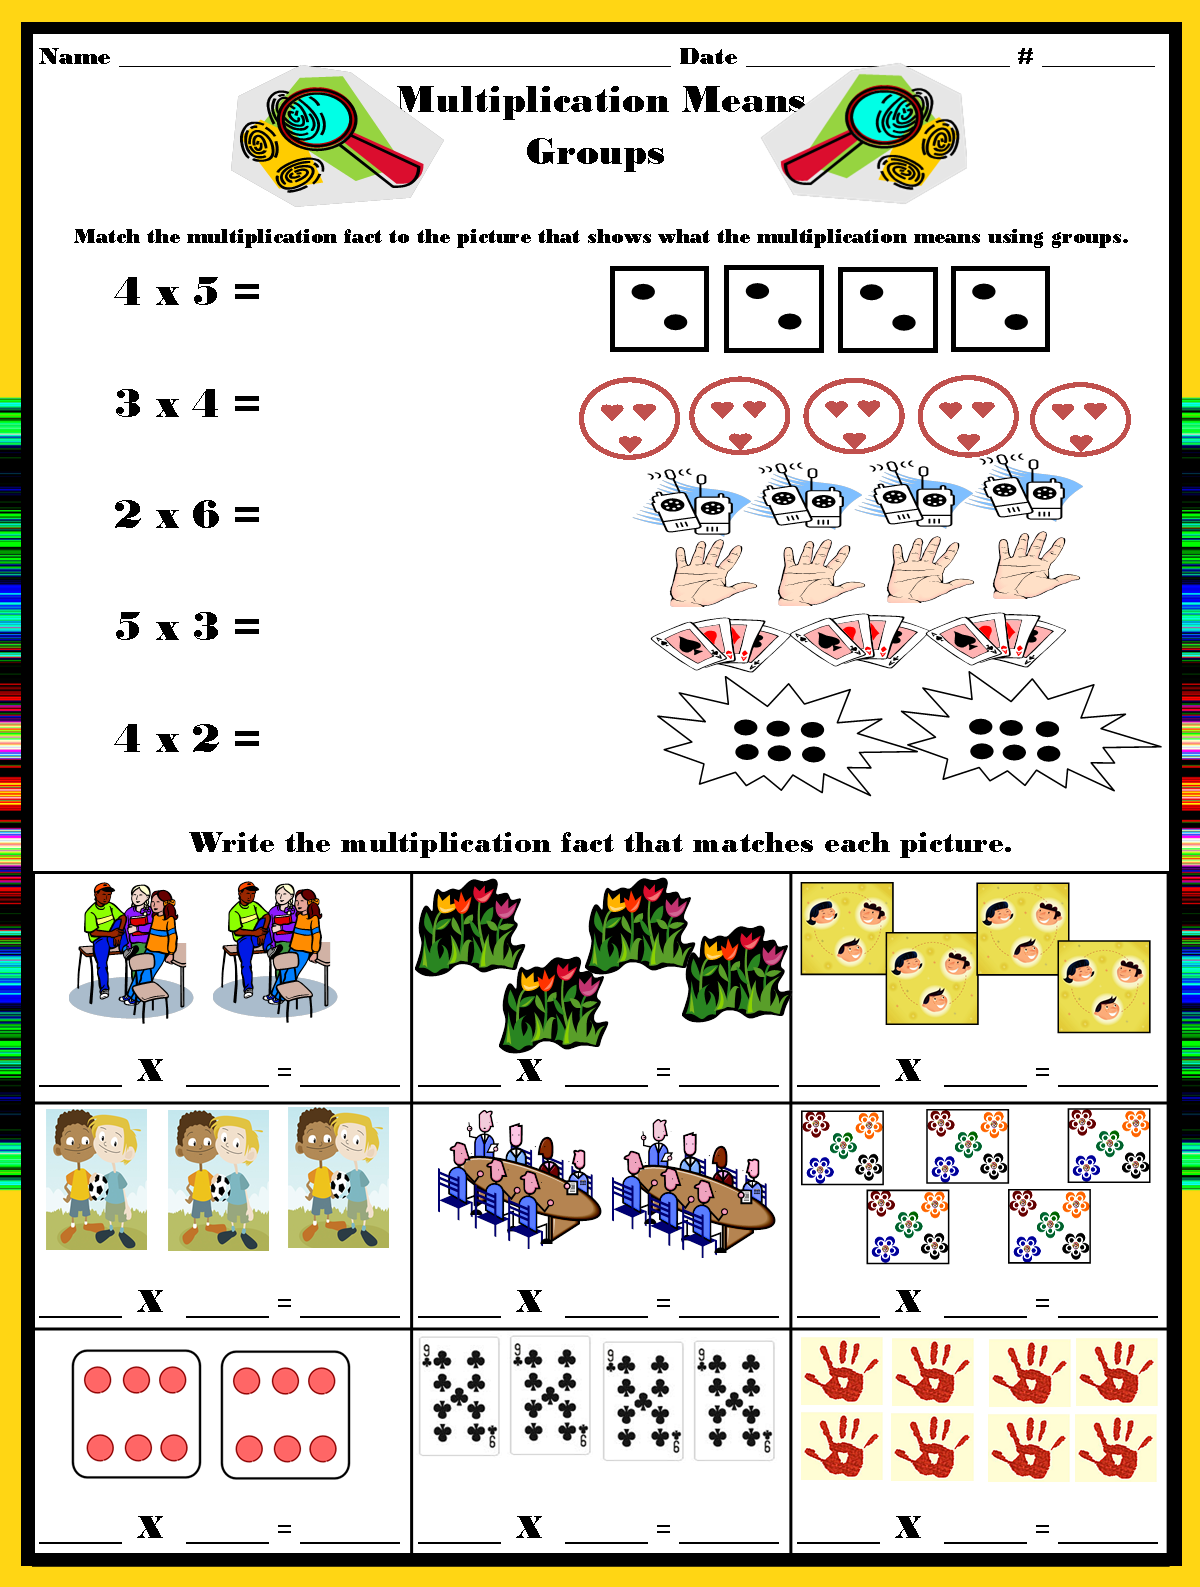 Mrs. Hill's Perfect P.I.R.A.T.E.S.: Mysterious Multiplication